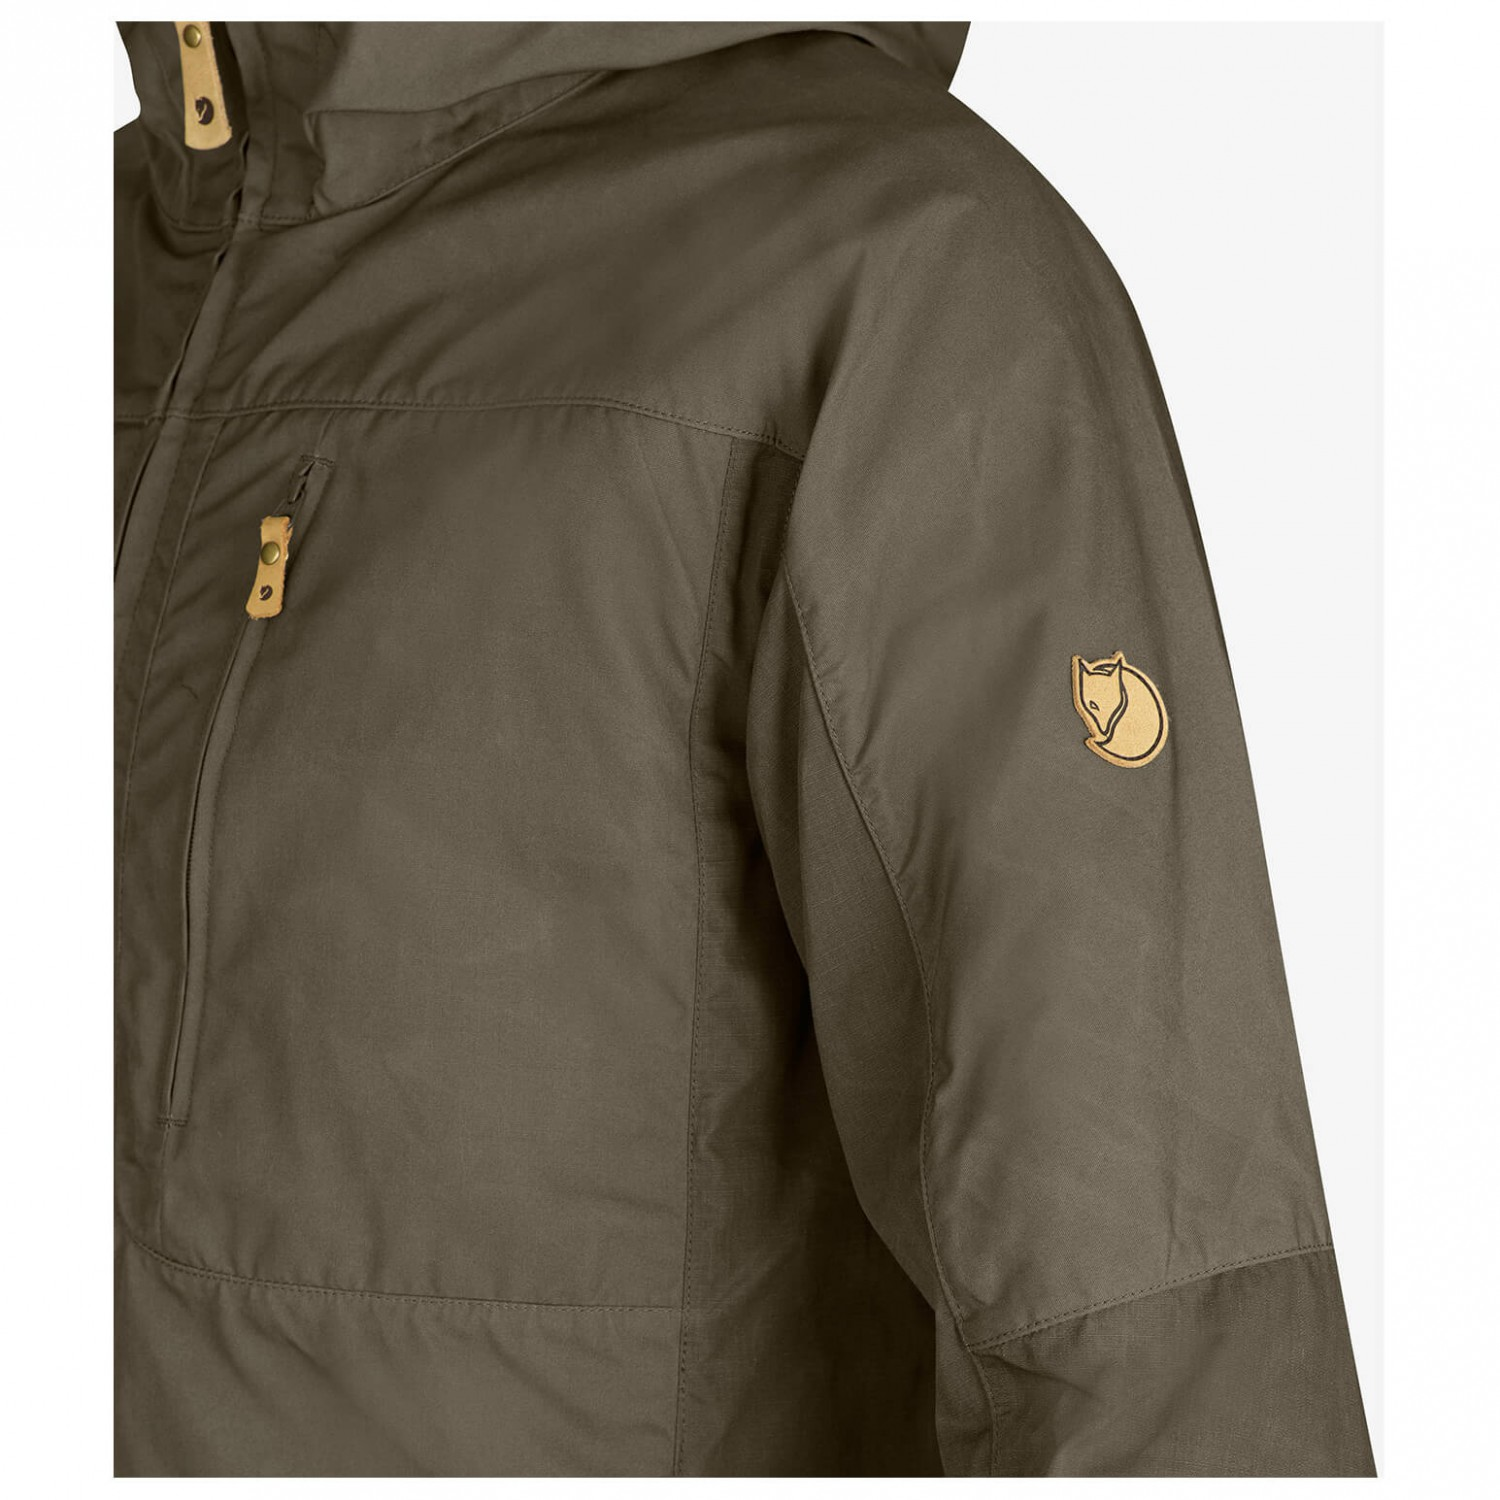 huge selection of 7fa90 afcf7 Fjällräven - Sten Jacket - Freizeitjacke - Dusk | S